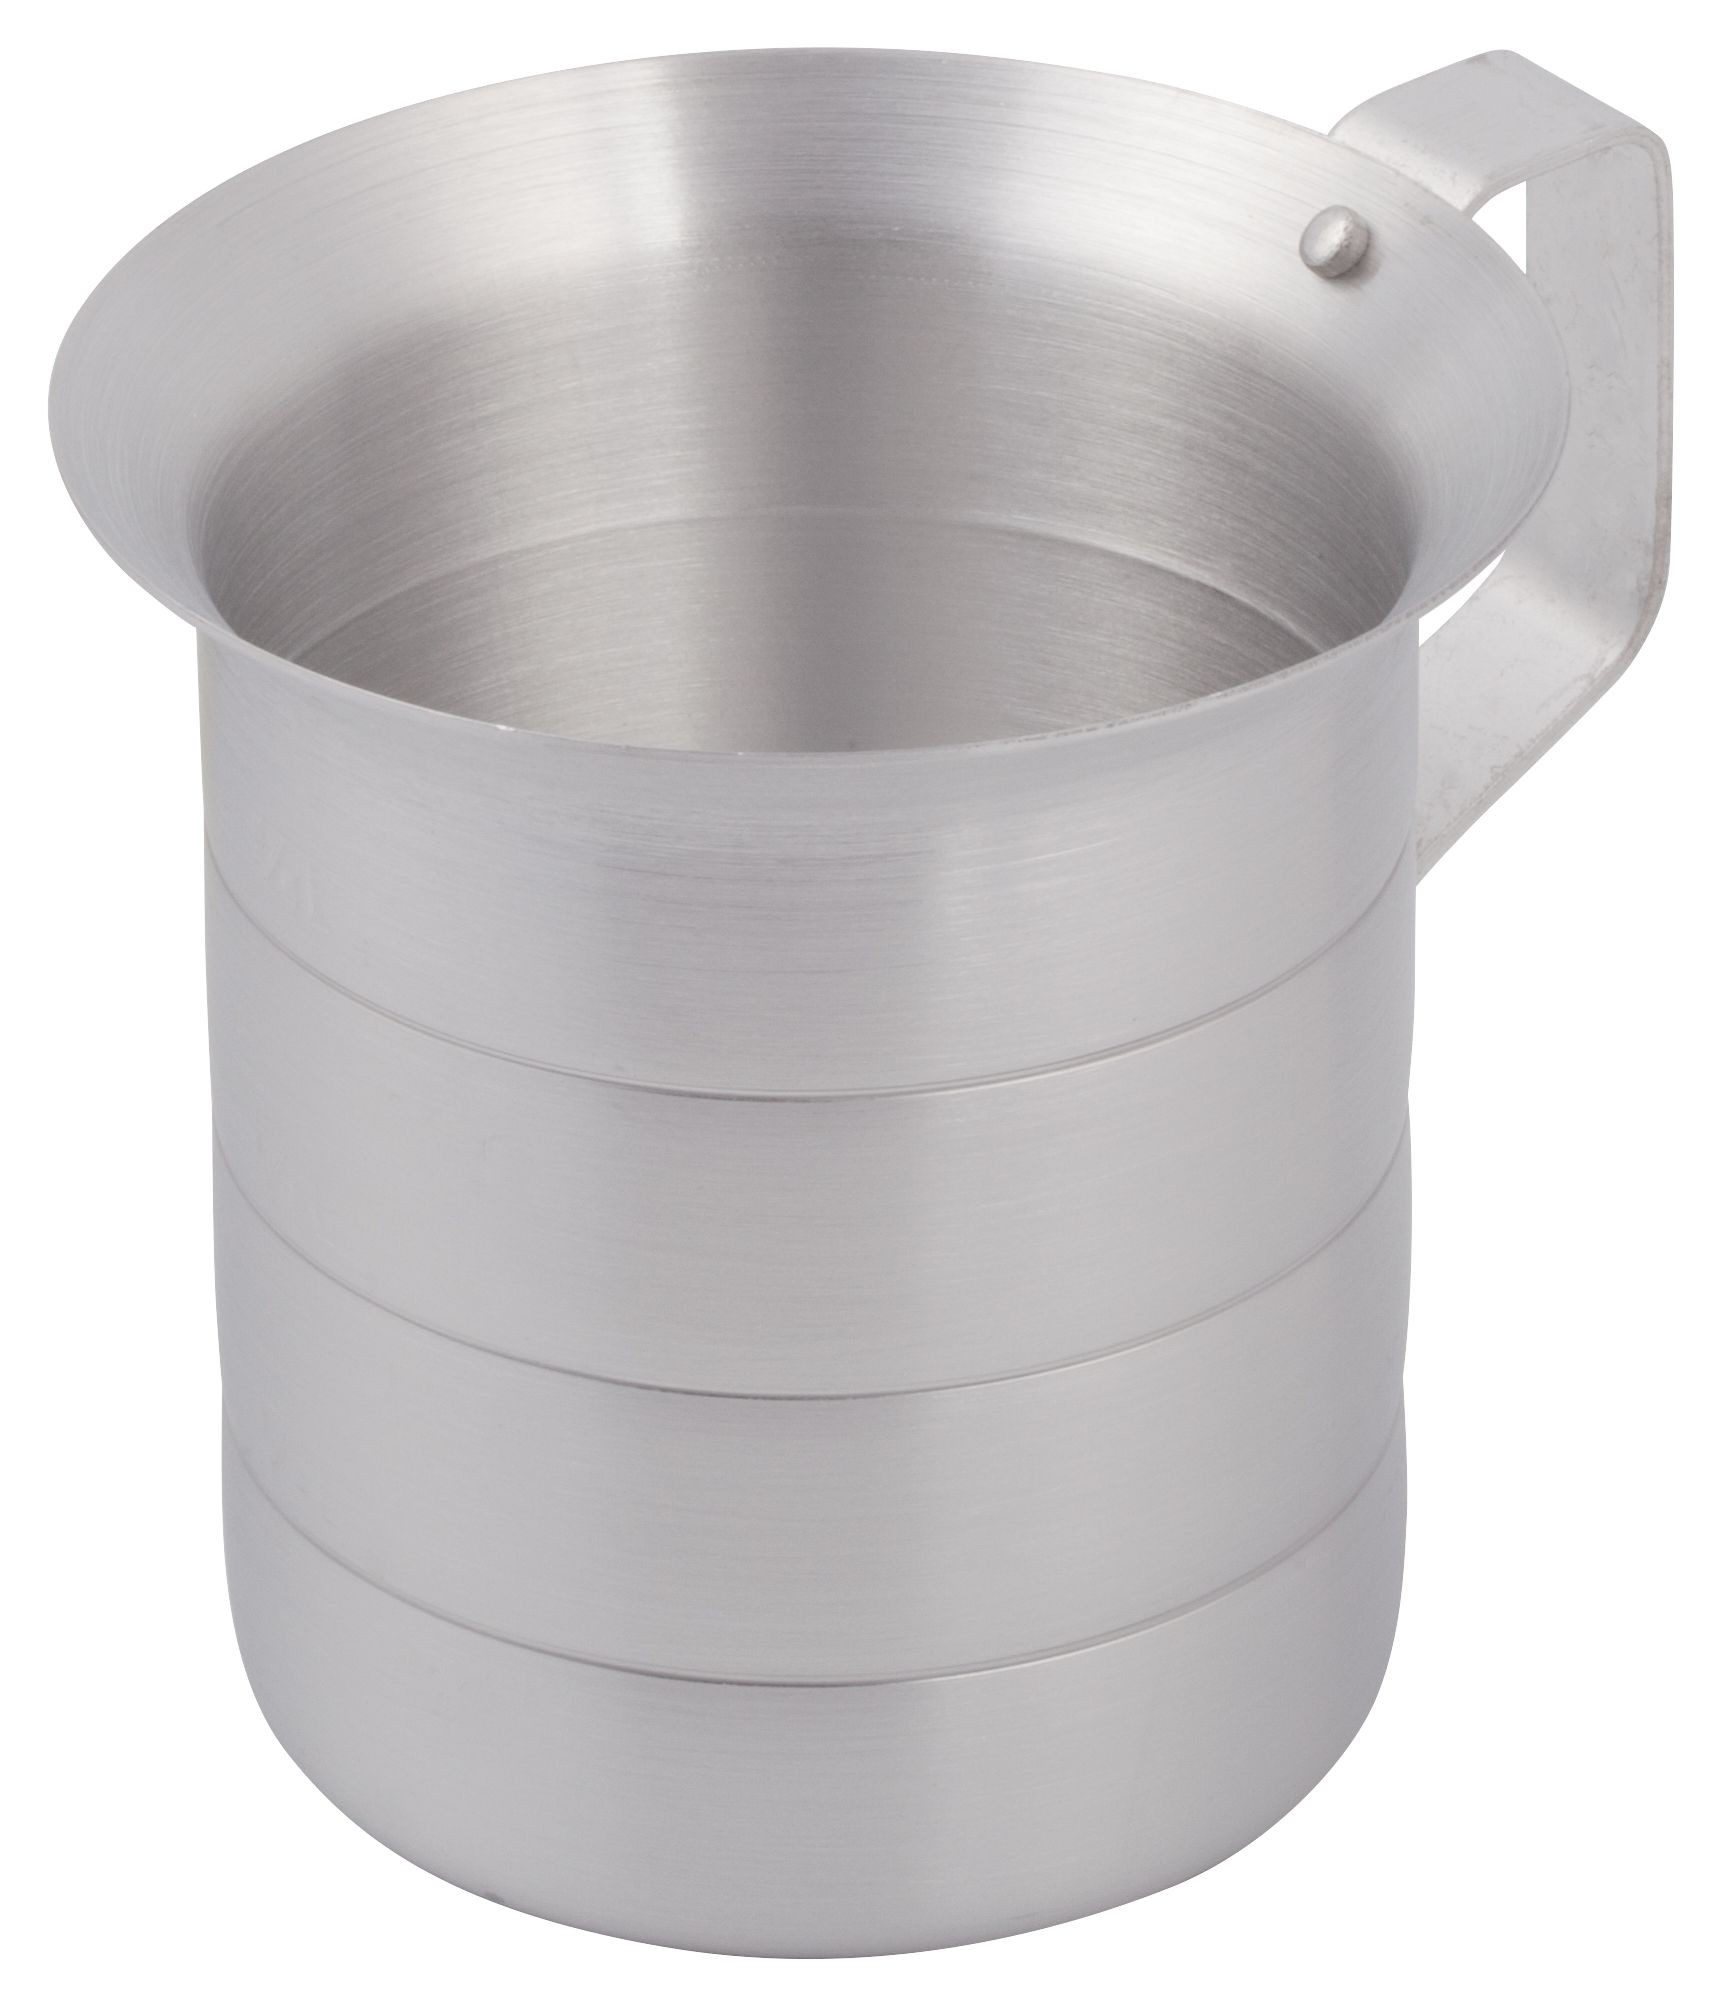 Winco AM-1 Aluminum Measuring Cup, 1 Qt.